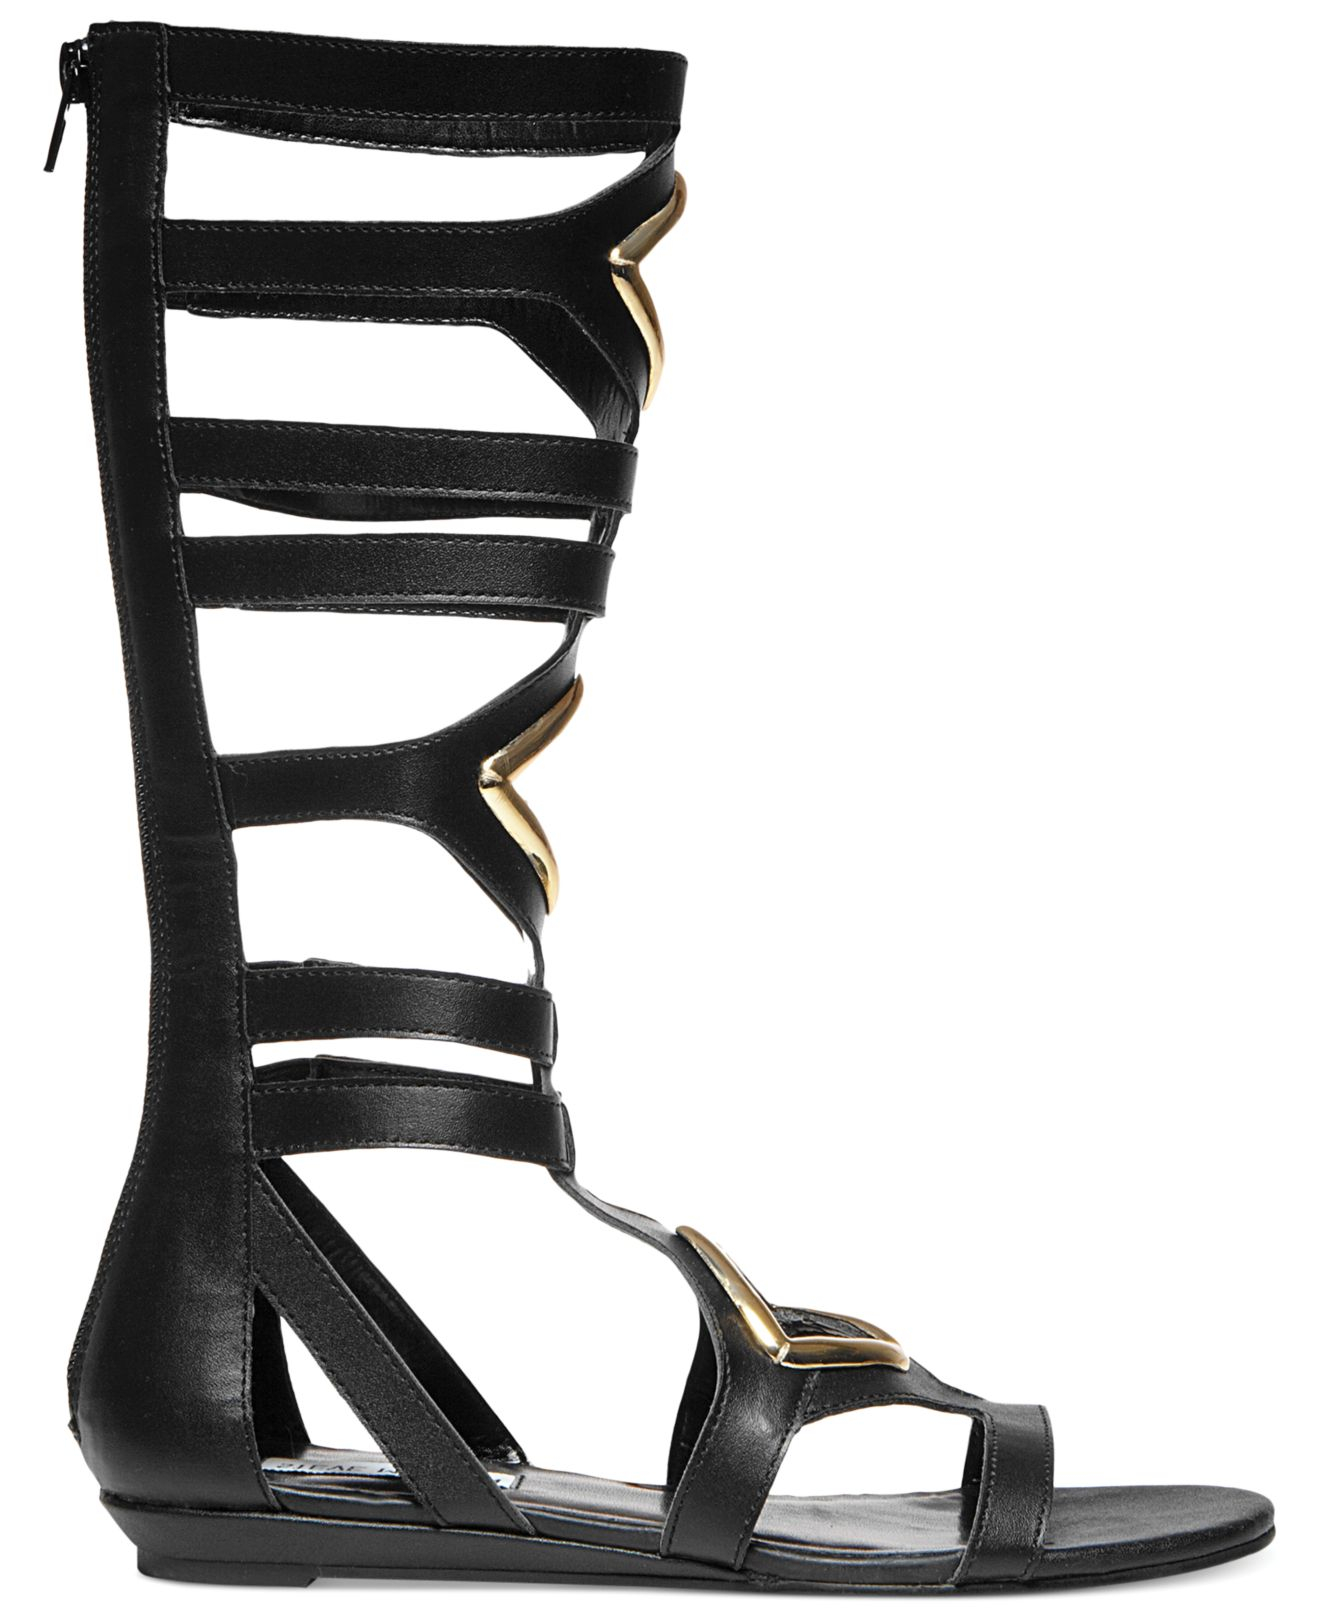 f9a5e25590e Lyst - Steve Madden Women S Aristotle Gladiator Sandals in Black